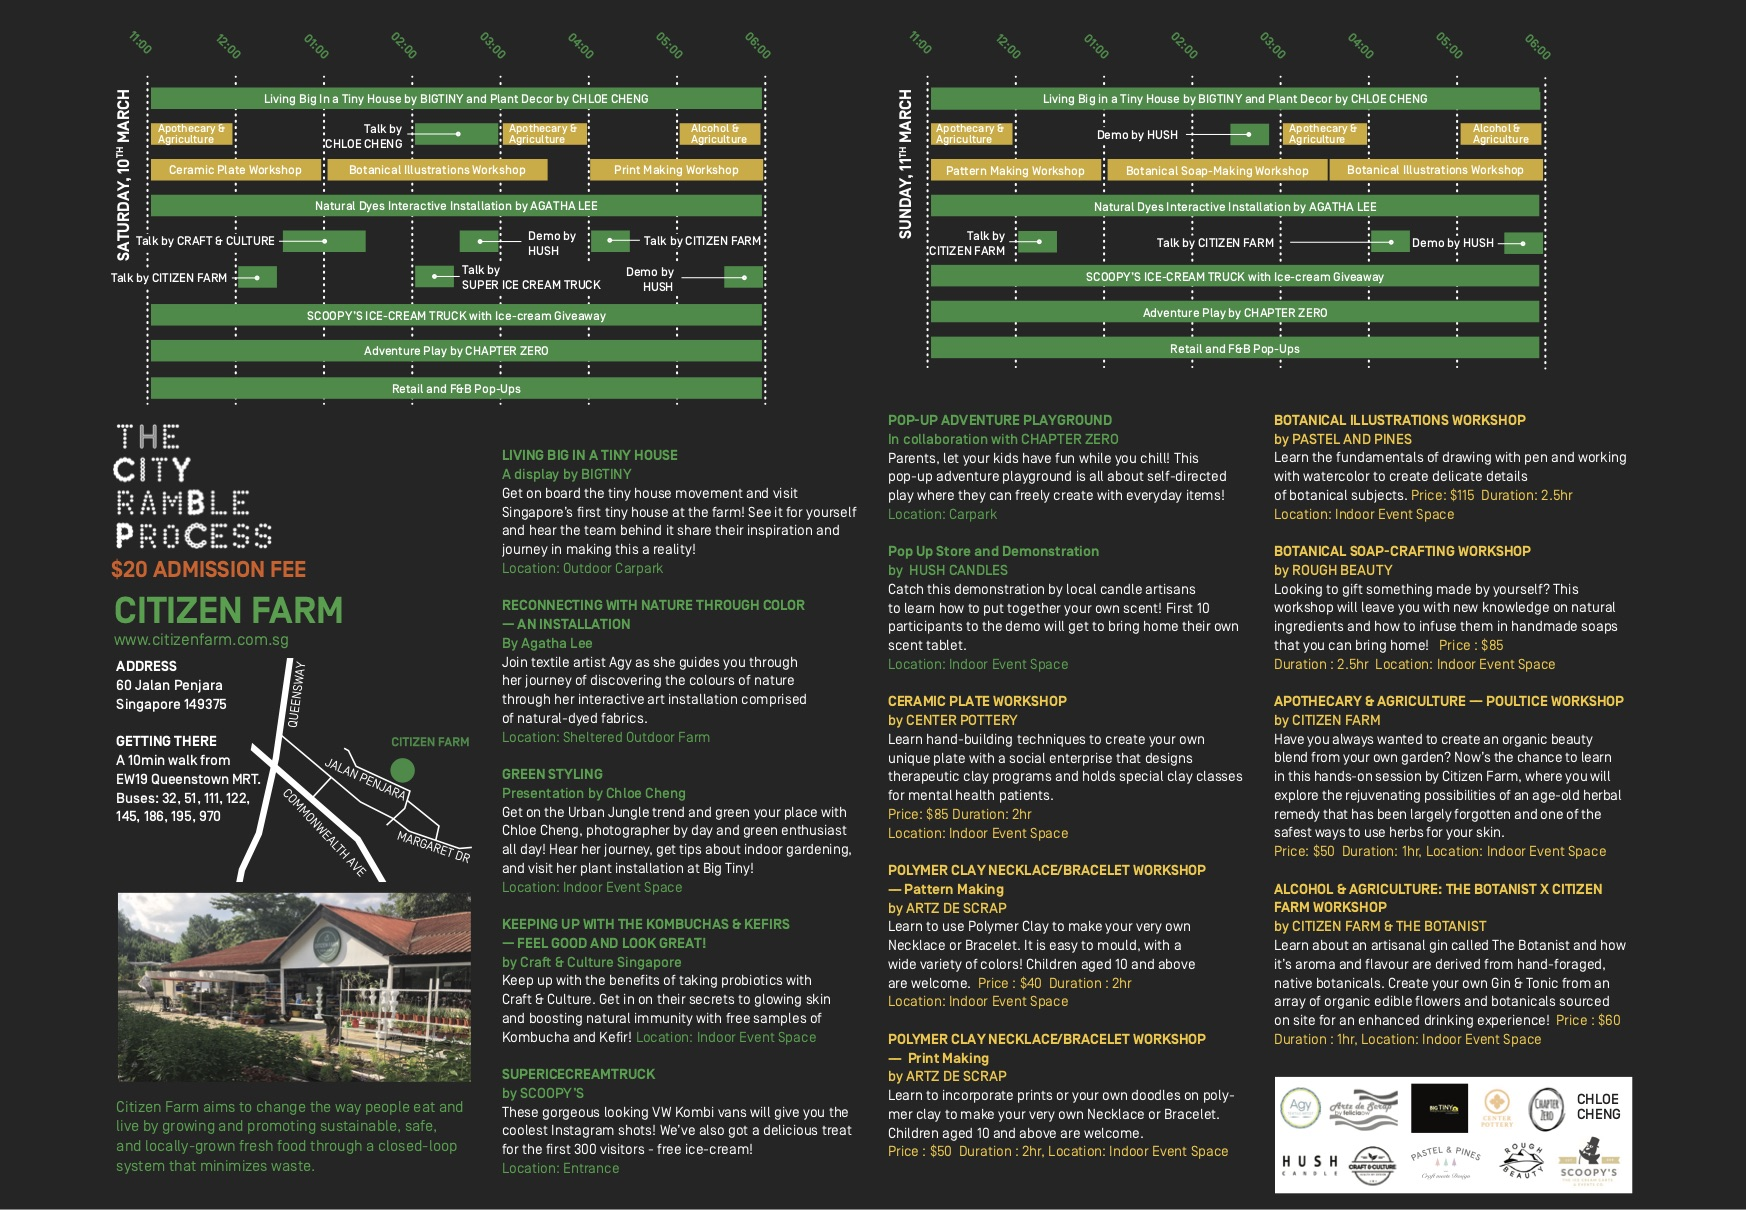 See everything at a glance with this handy flyer! Click on the image to see a larger version.